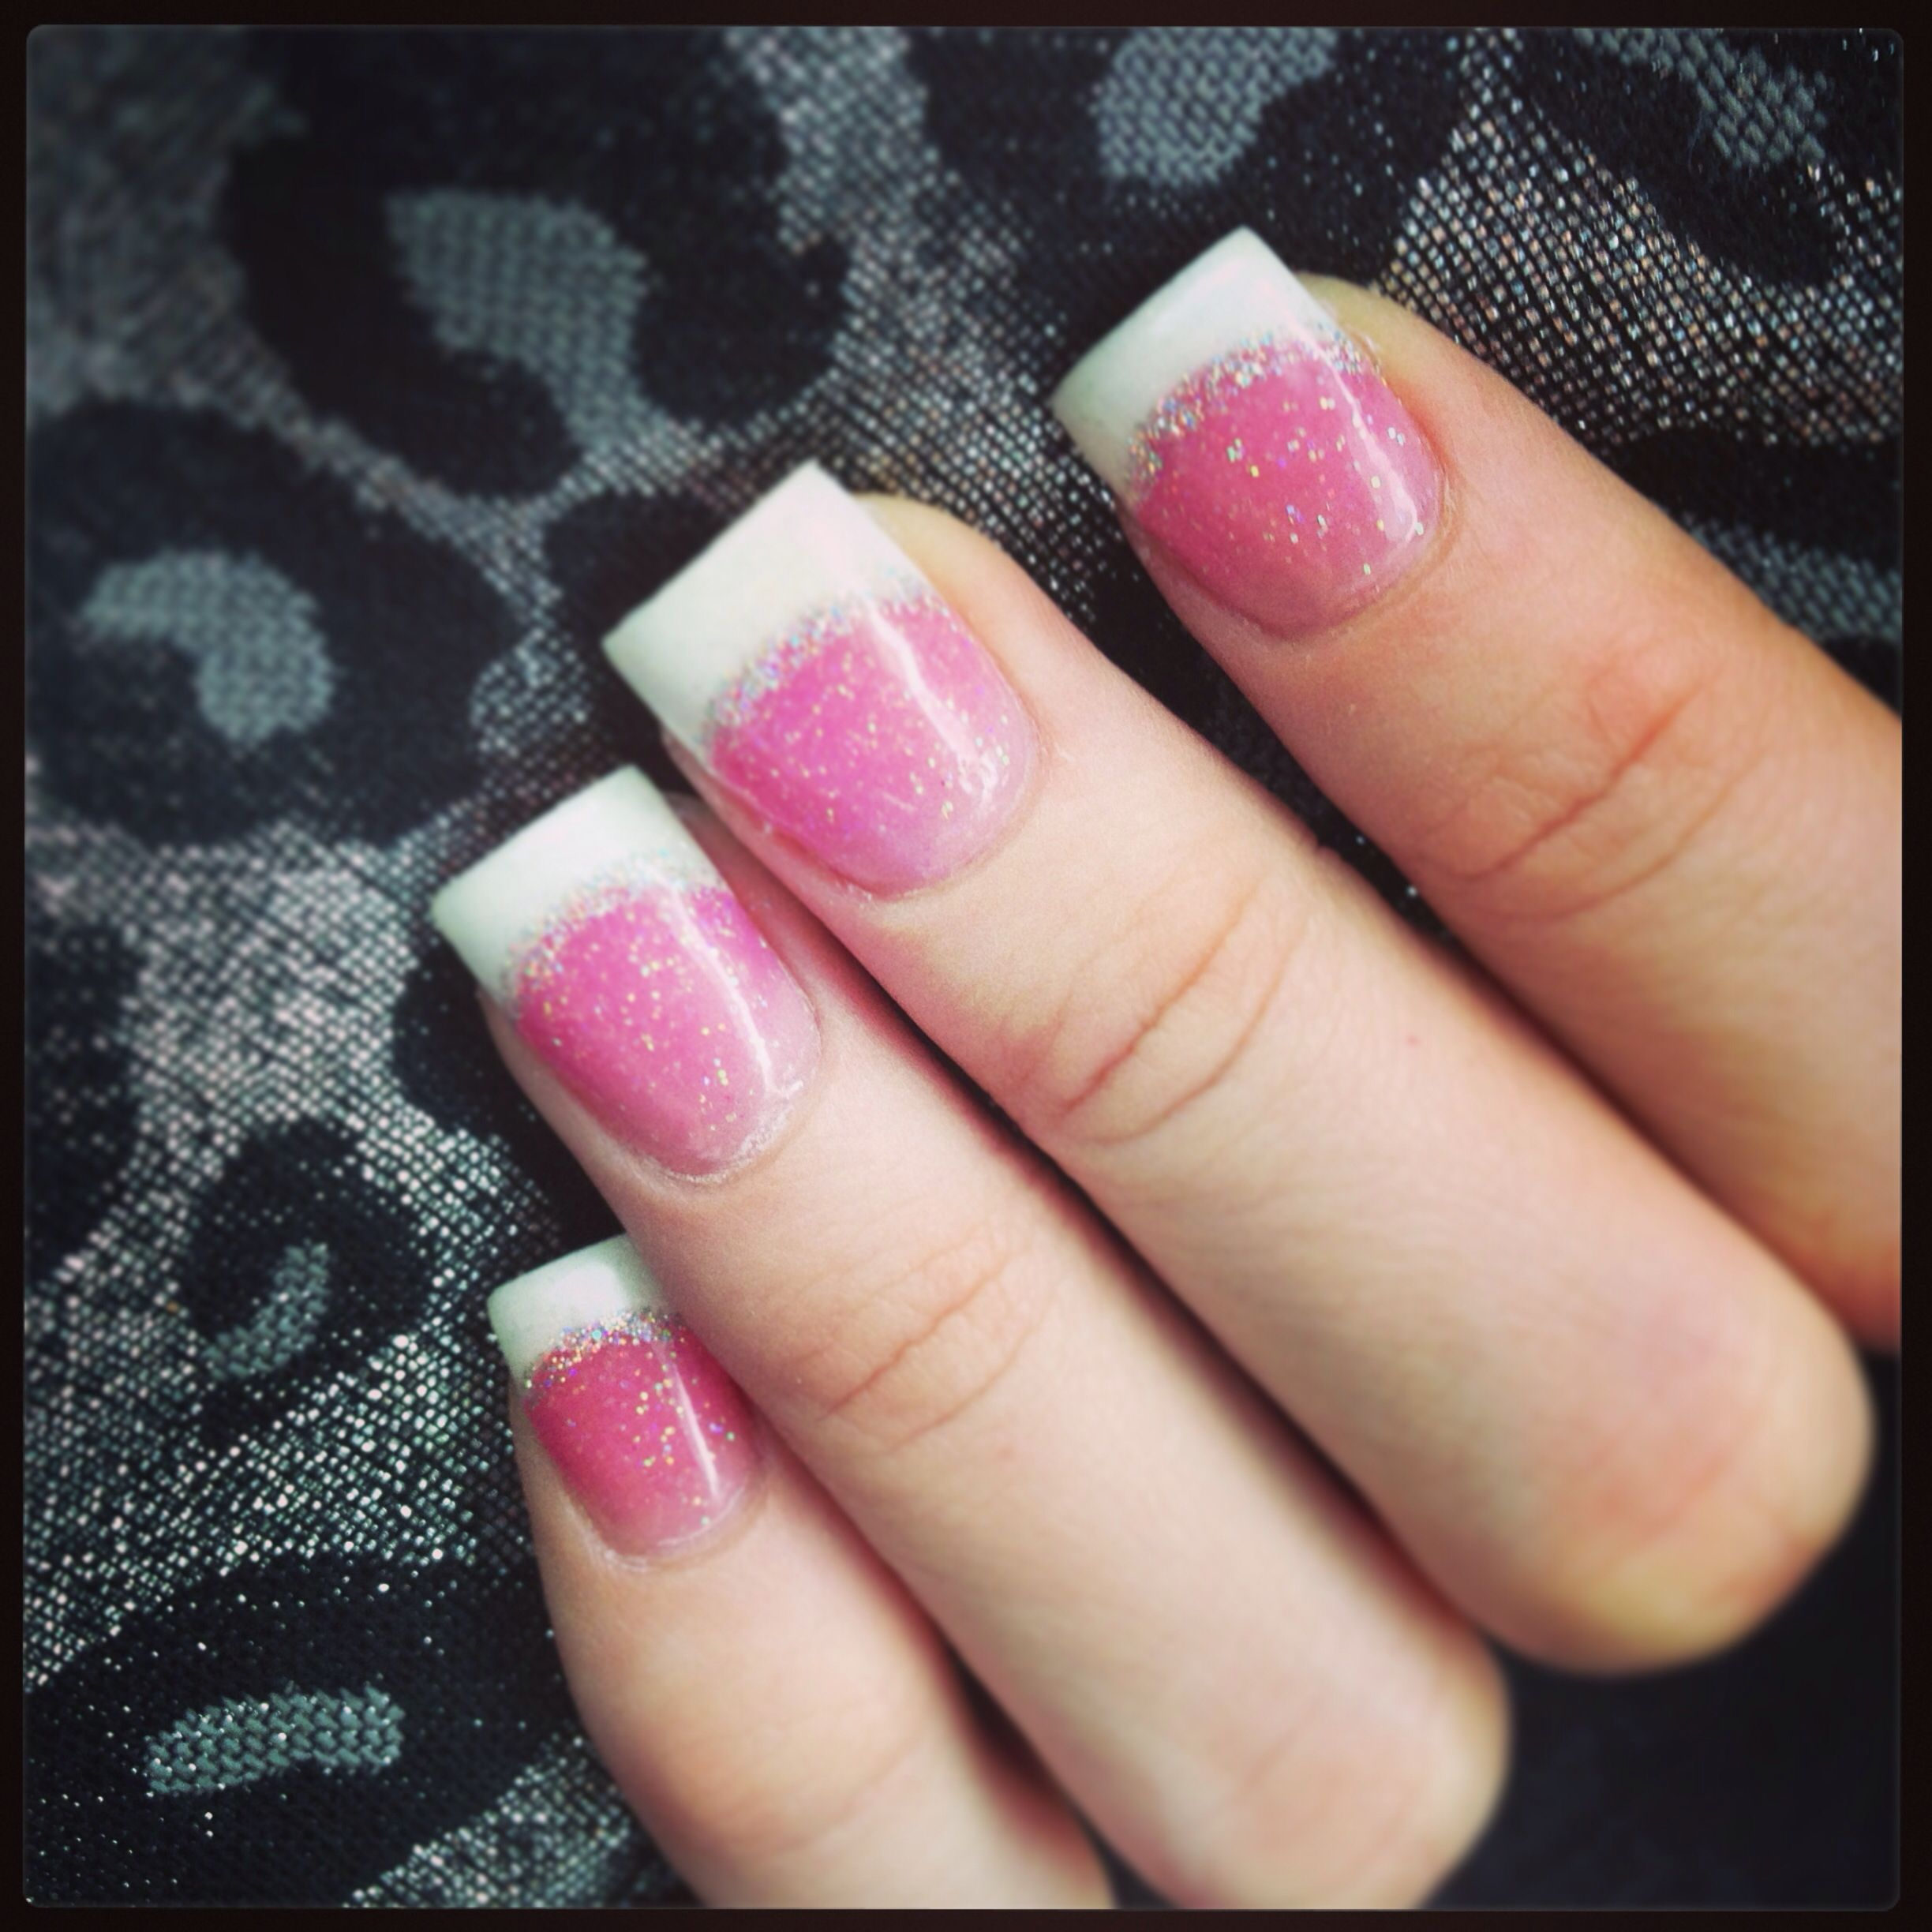 Pink and White with Glitter Acrylic Nails | Nails by Cao | Pinterest ...